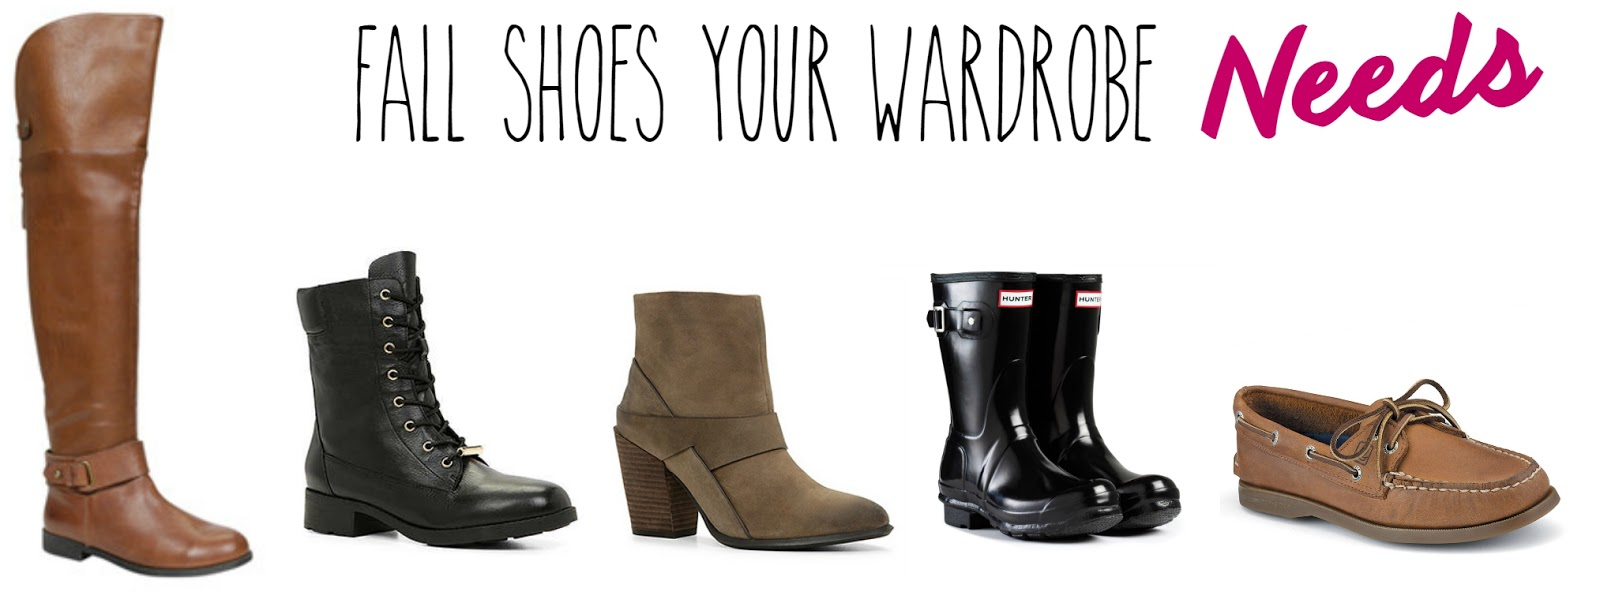 Le Northern Belle Blog | Fall Fashion Items Every Wardrobe Needs